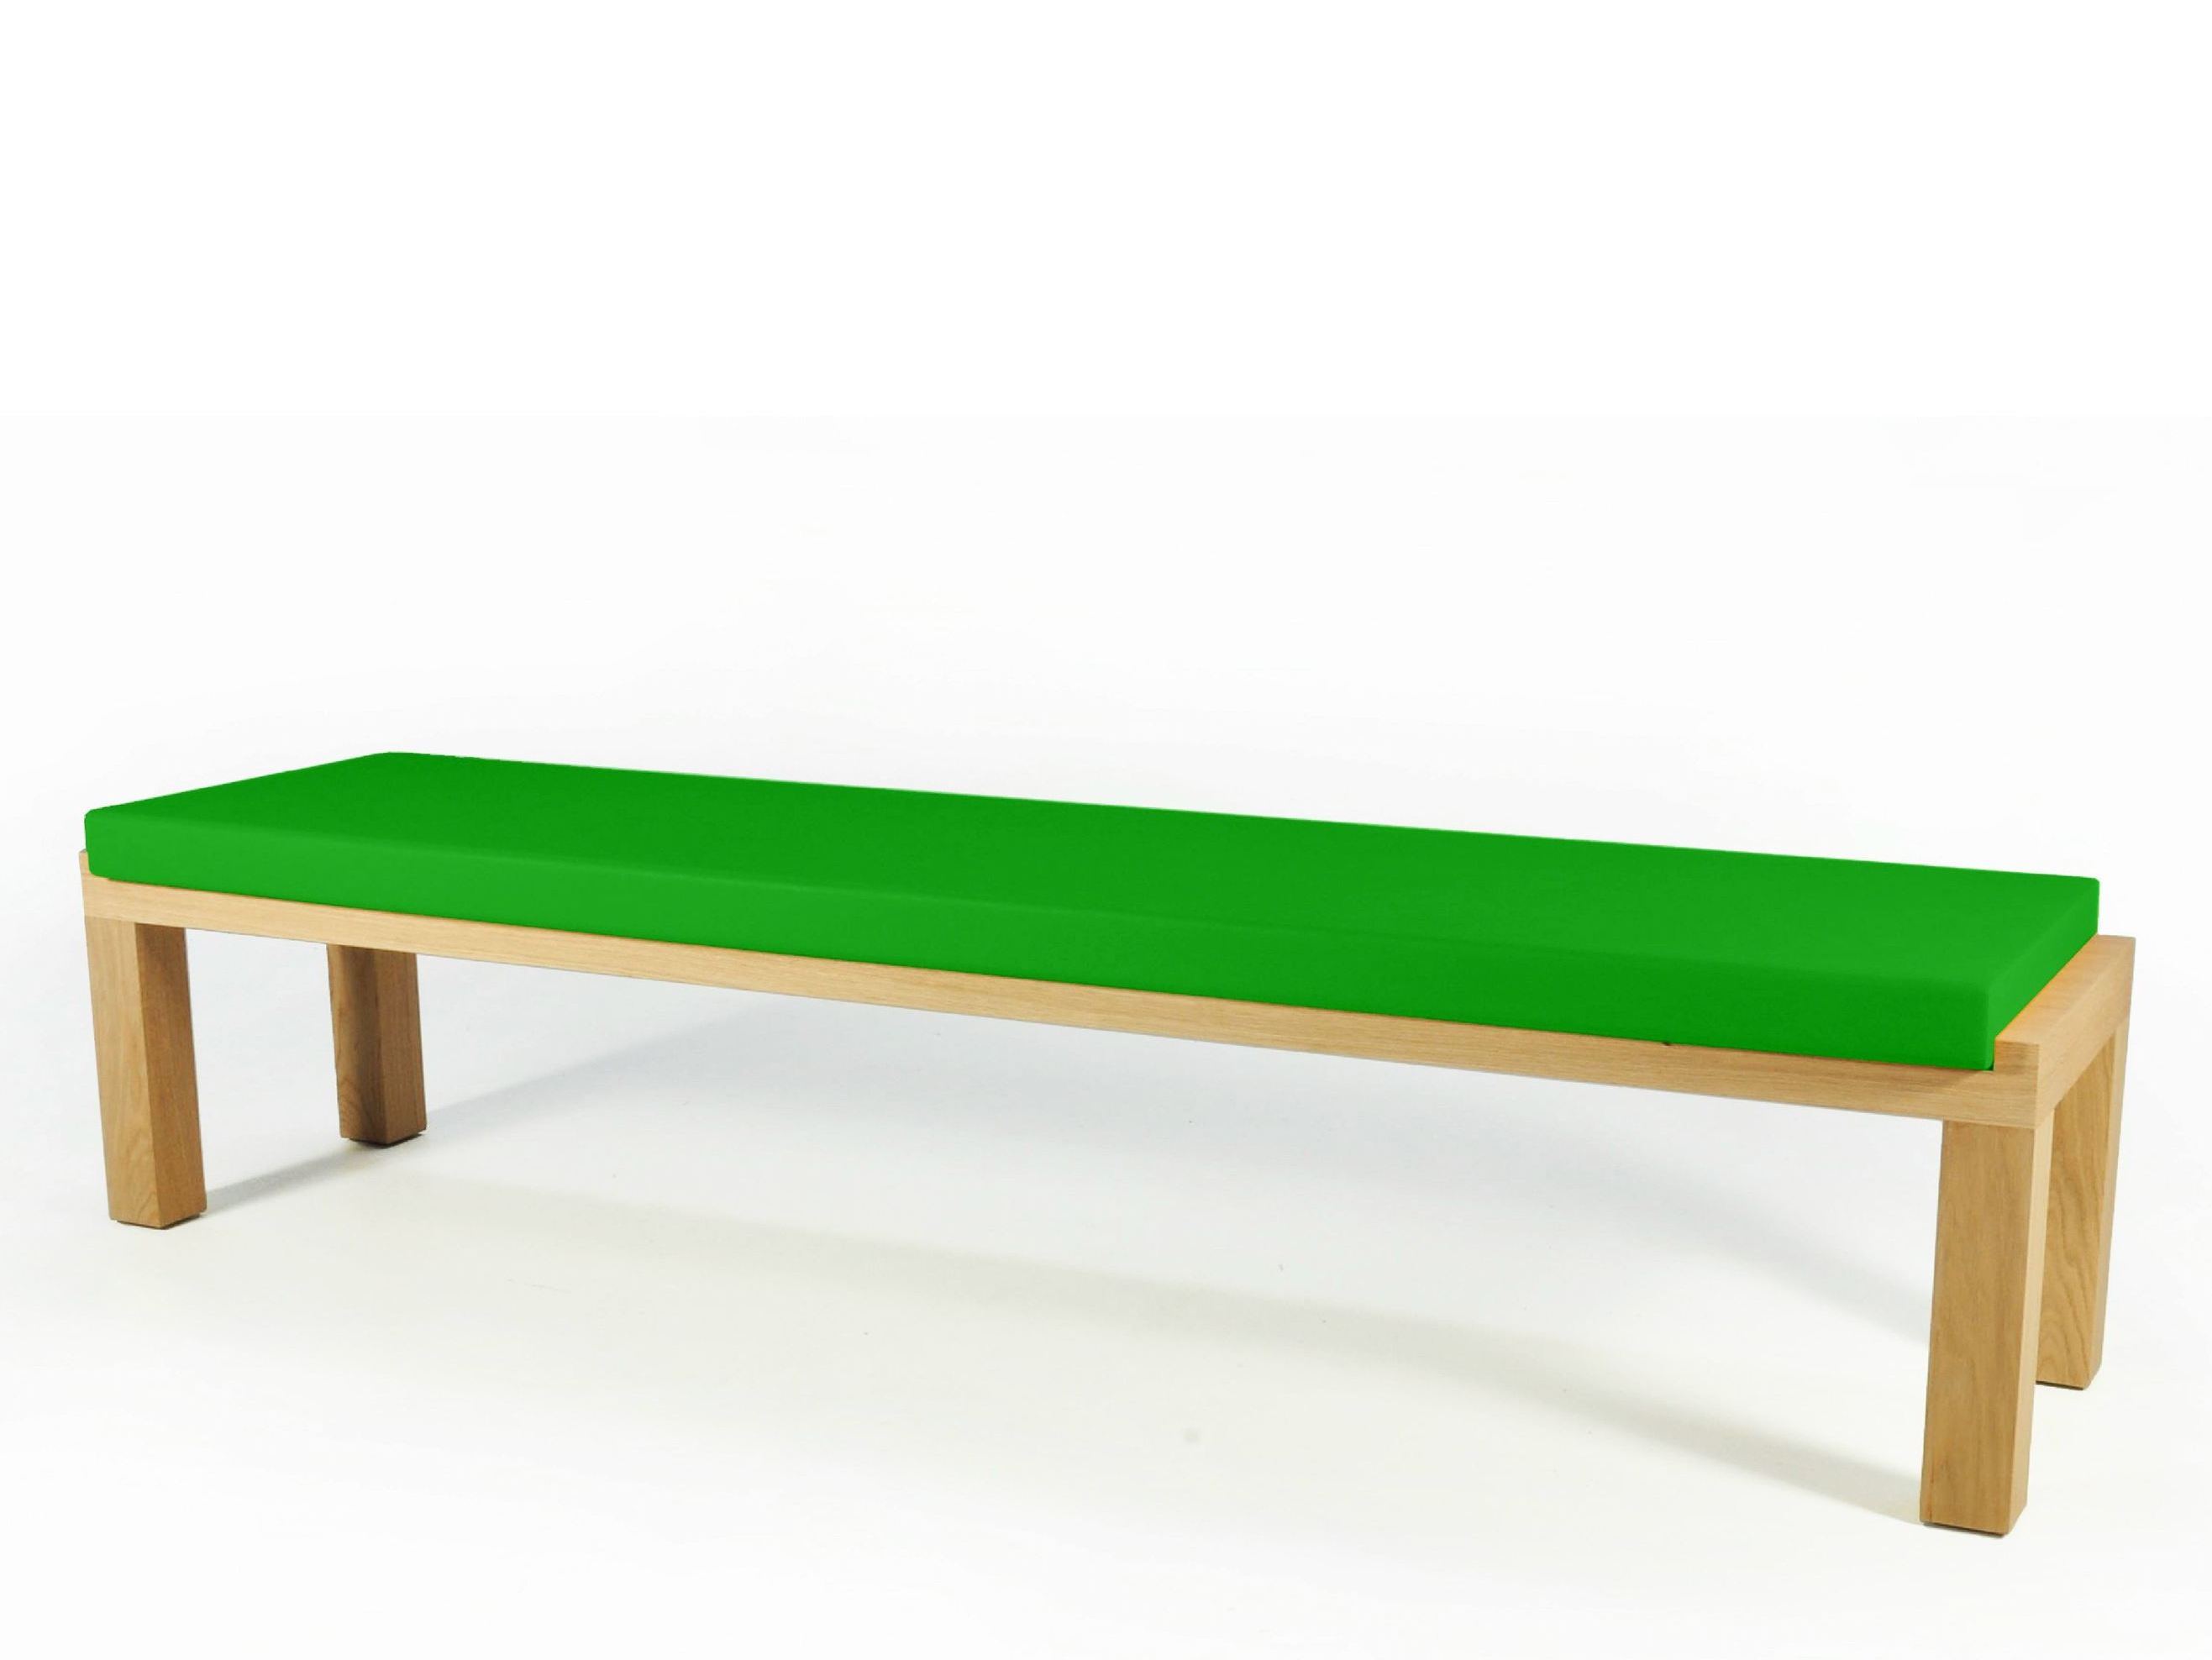 Camping bench 250 upholstered bench by quinze milan - Como hacer un banco de madera ...